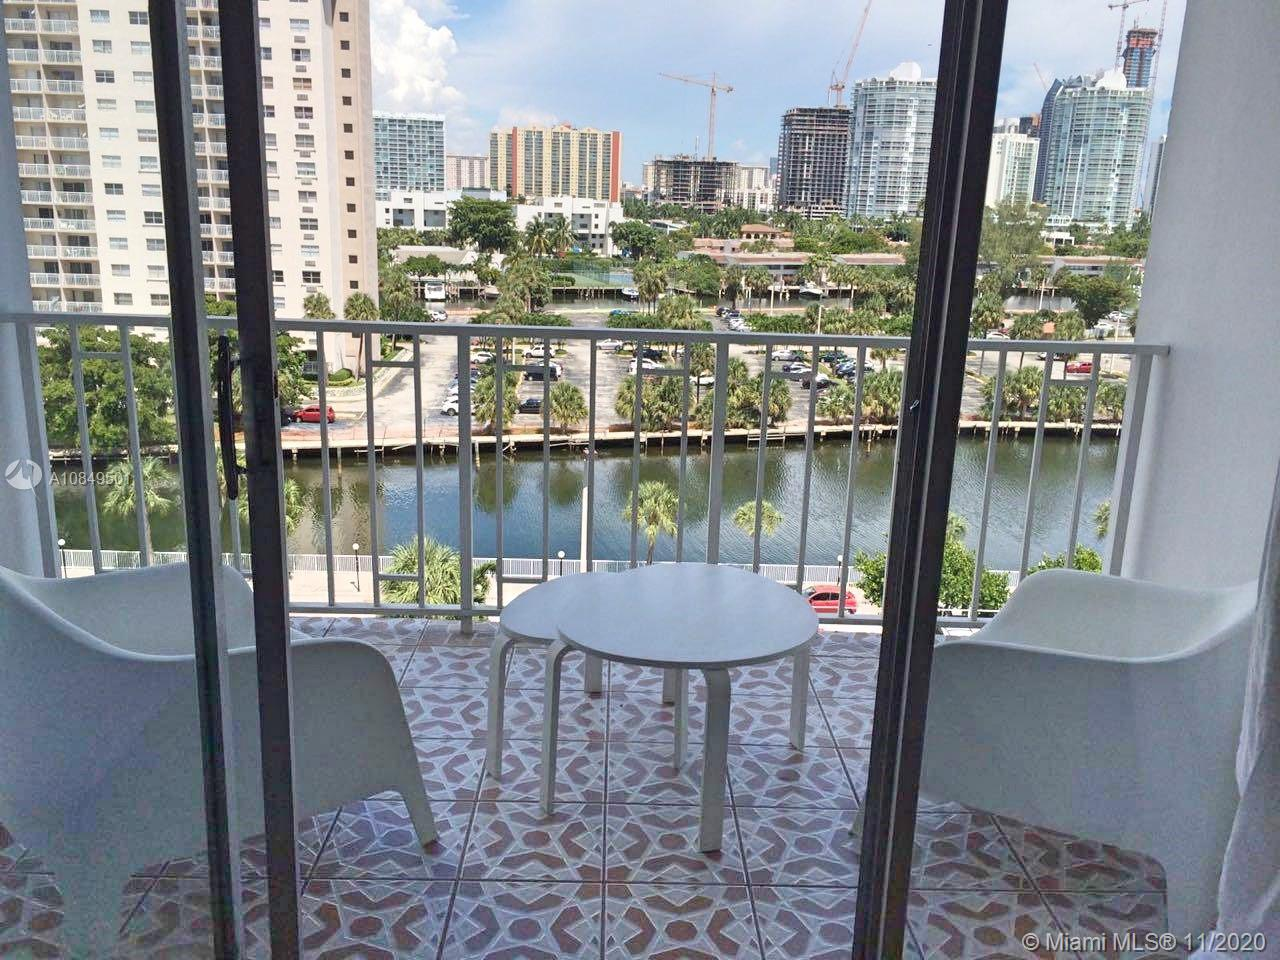 500 Bayview Dr # 725, Sunny Isles Beach, Florida 33160, 1 Bedroom Bedrooms, ,2 BathroomsBathrooms,Residential,For Sale,500 Bayview Dr # 725,A10849501